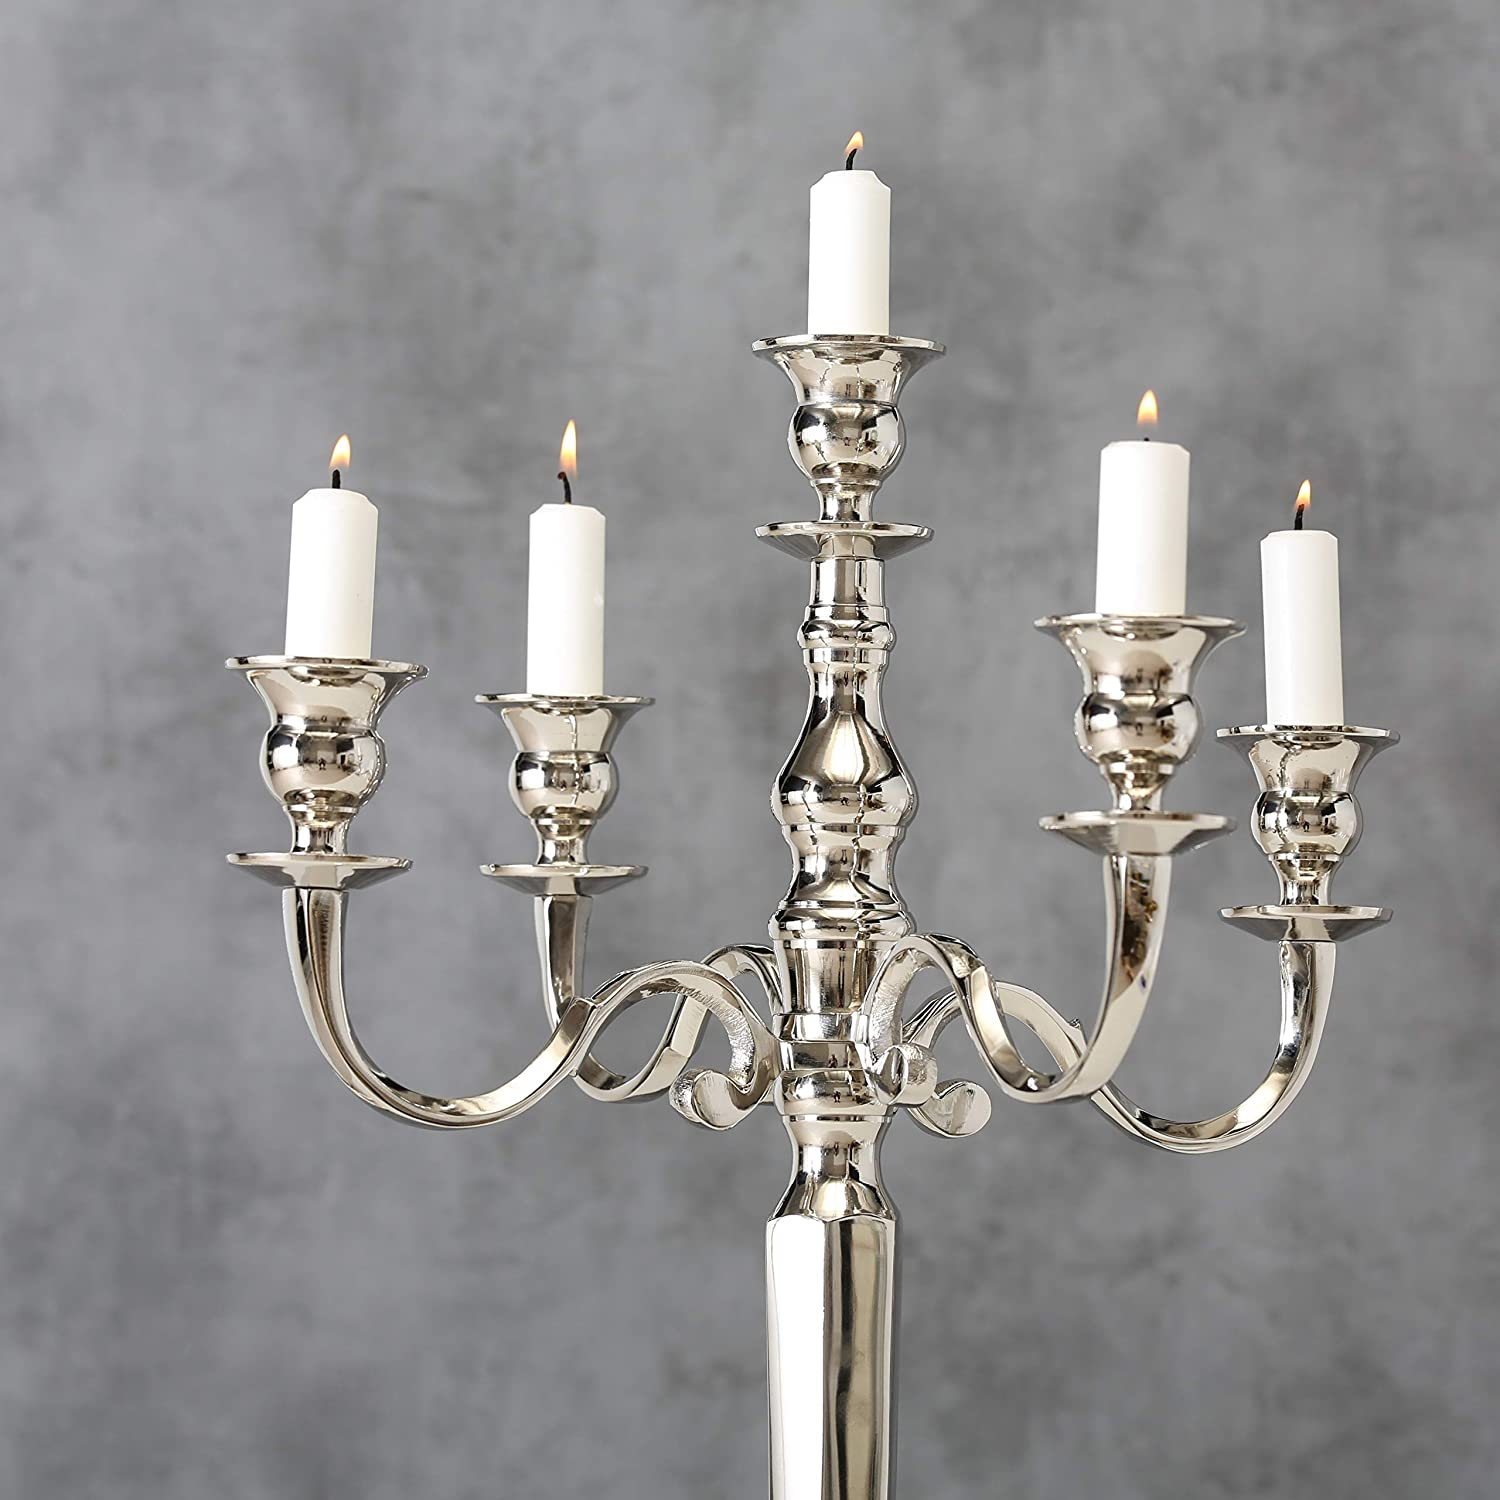 Hand Crafted of Silver Aluminum Nickel 14.5 D x 25.5 H Inches WHW Whole House Worlds Romantic Hamptons 25 InchTall Five Candle Silver Candelabra 37 D x 65 H cm